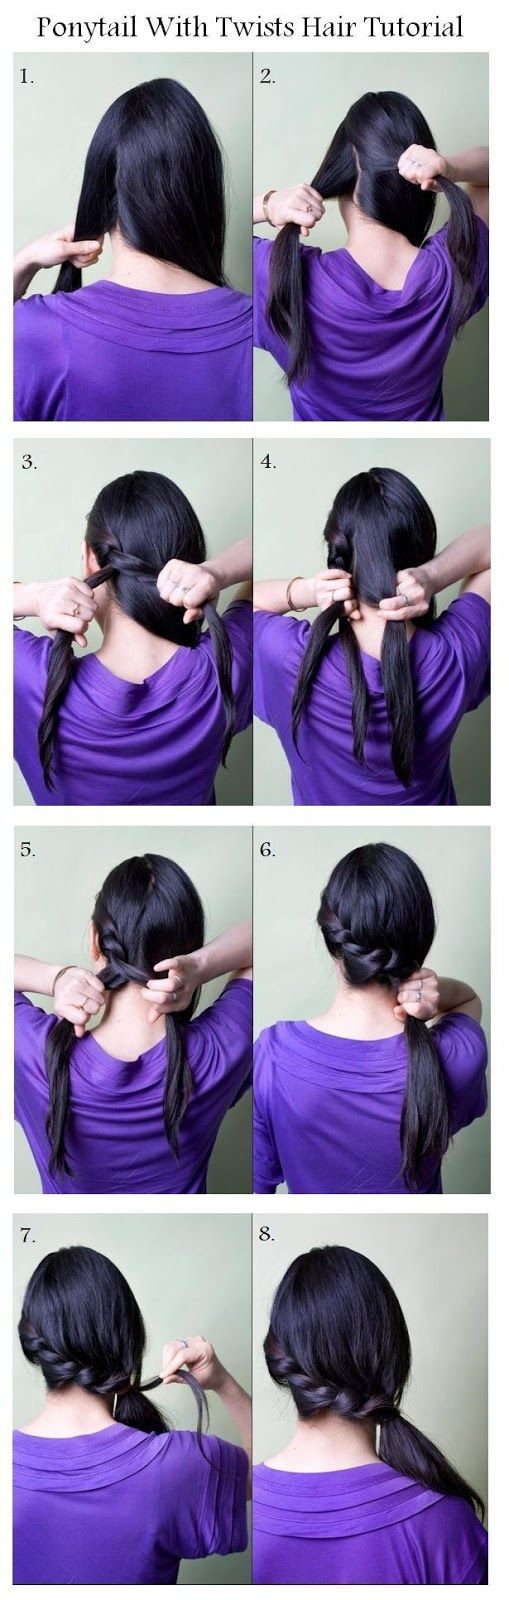 Make A Ponytail With Twists For Your Hair   hairstyles tutorial